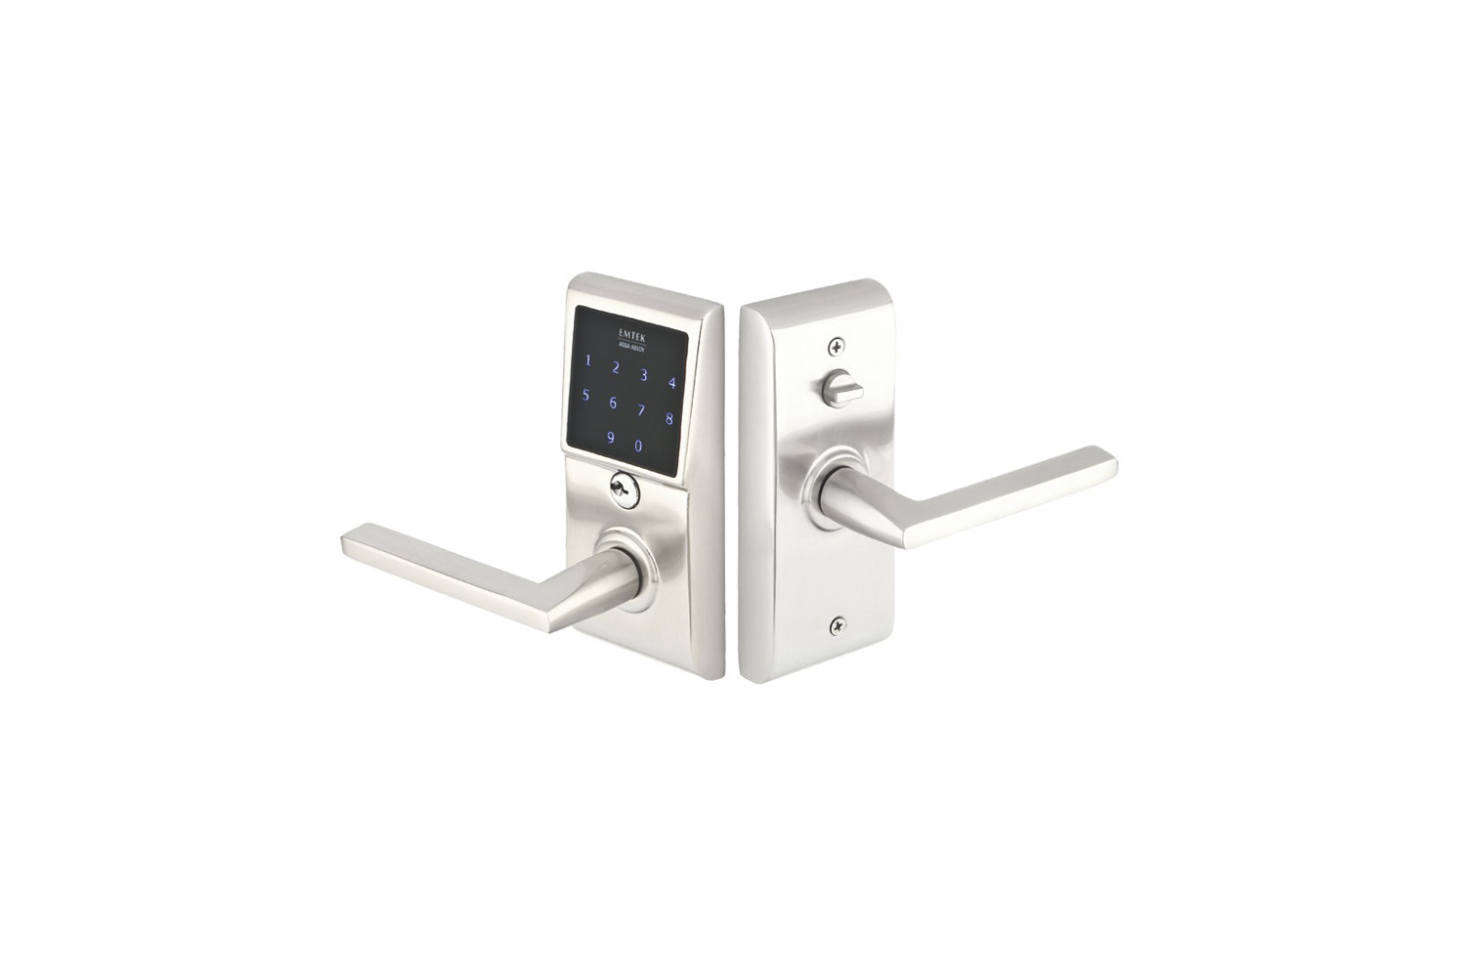 The Emtek E40 EmTeouch Passage Keyless Lever comes in Flat Black, Polished Chrome, and Satin Nickel (shown) and with a range of corresponding lever styles from Emtek; $7.39 at Direct Door Hardware.